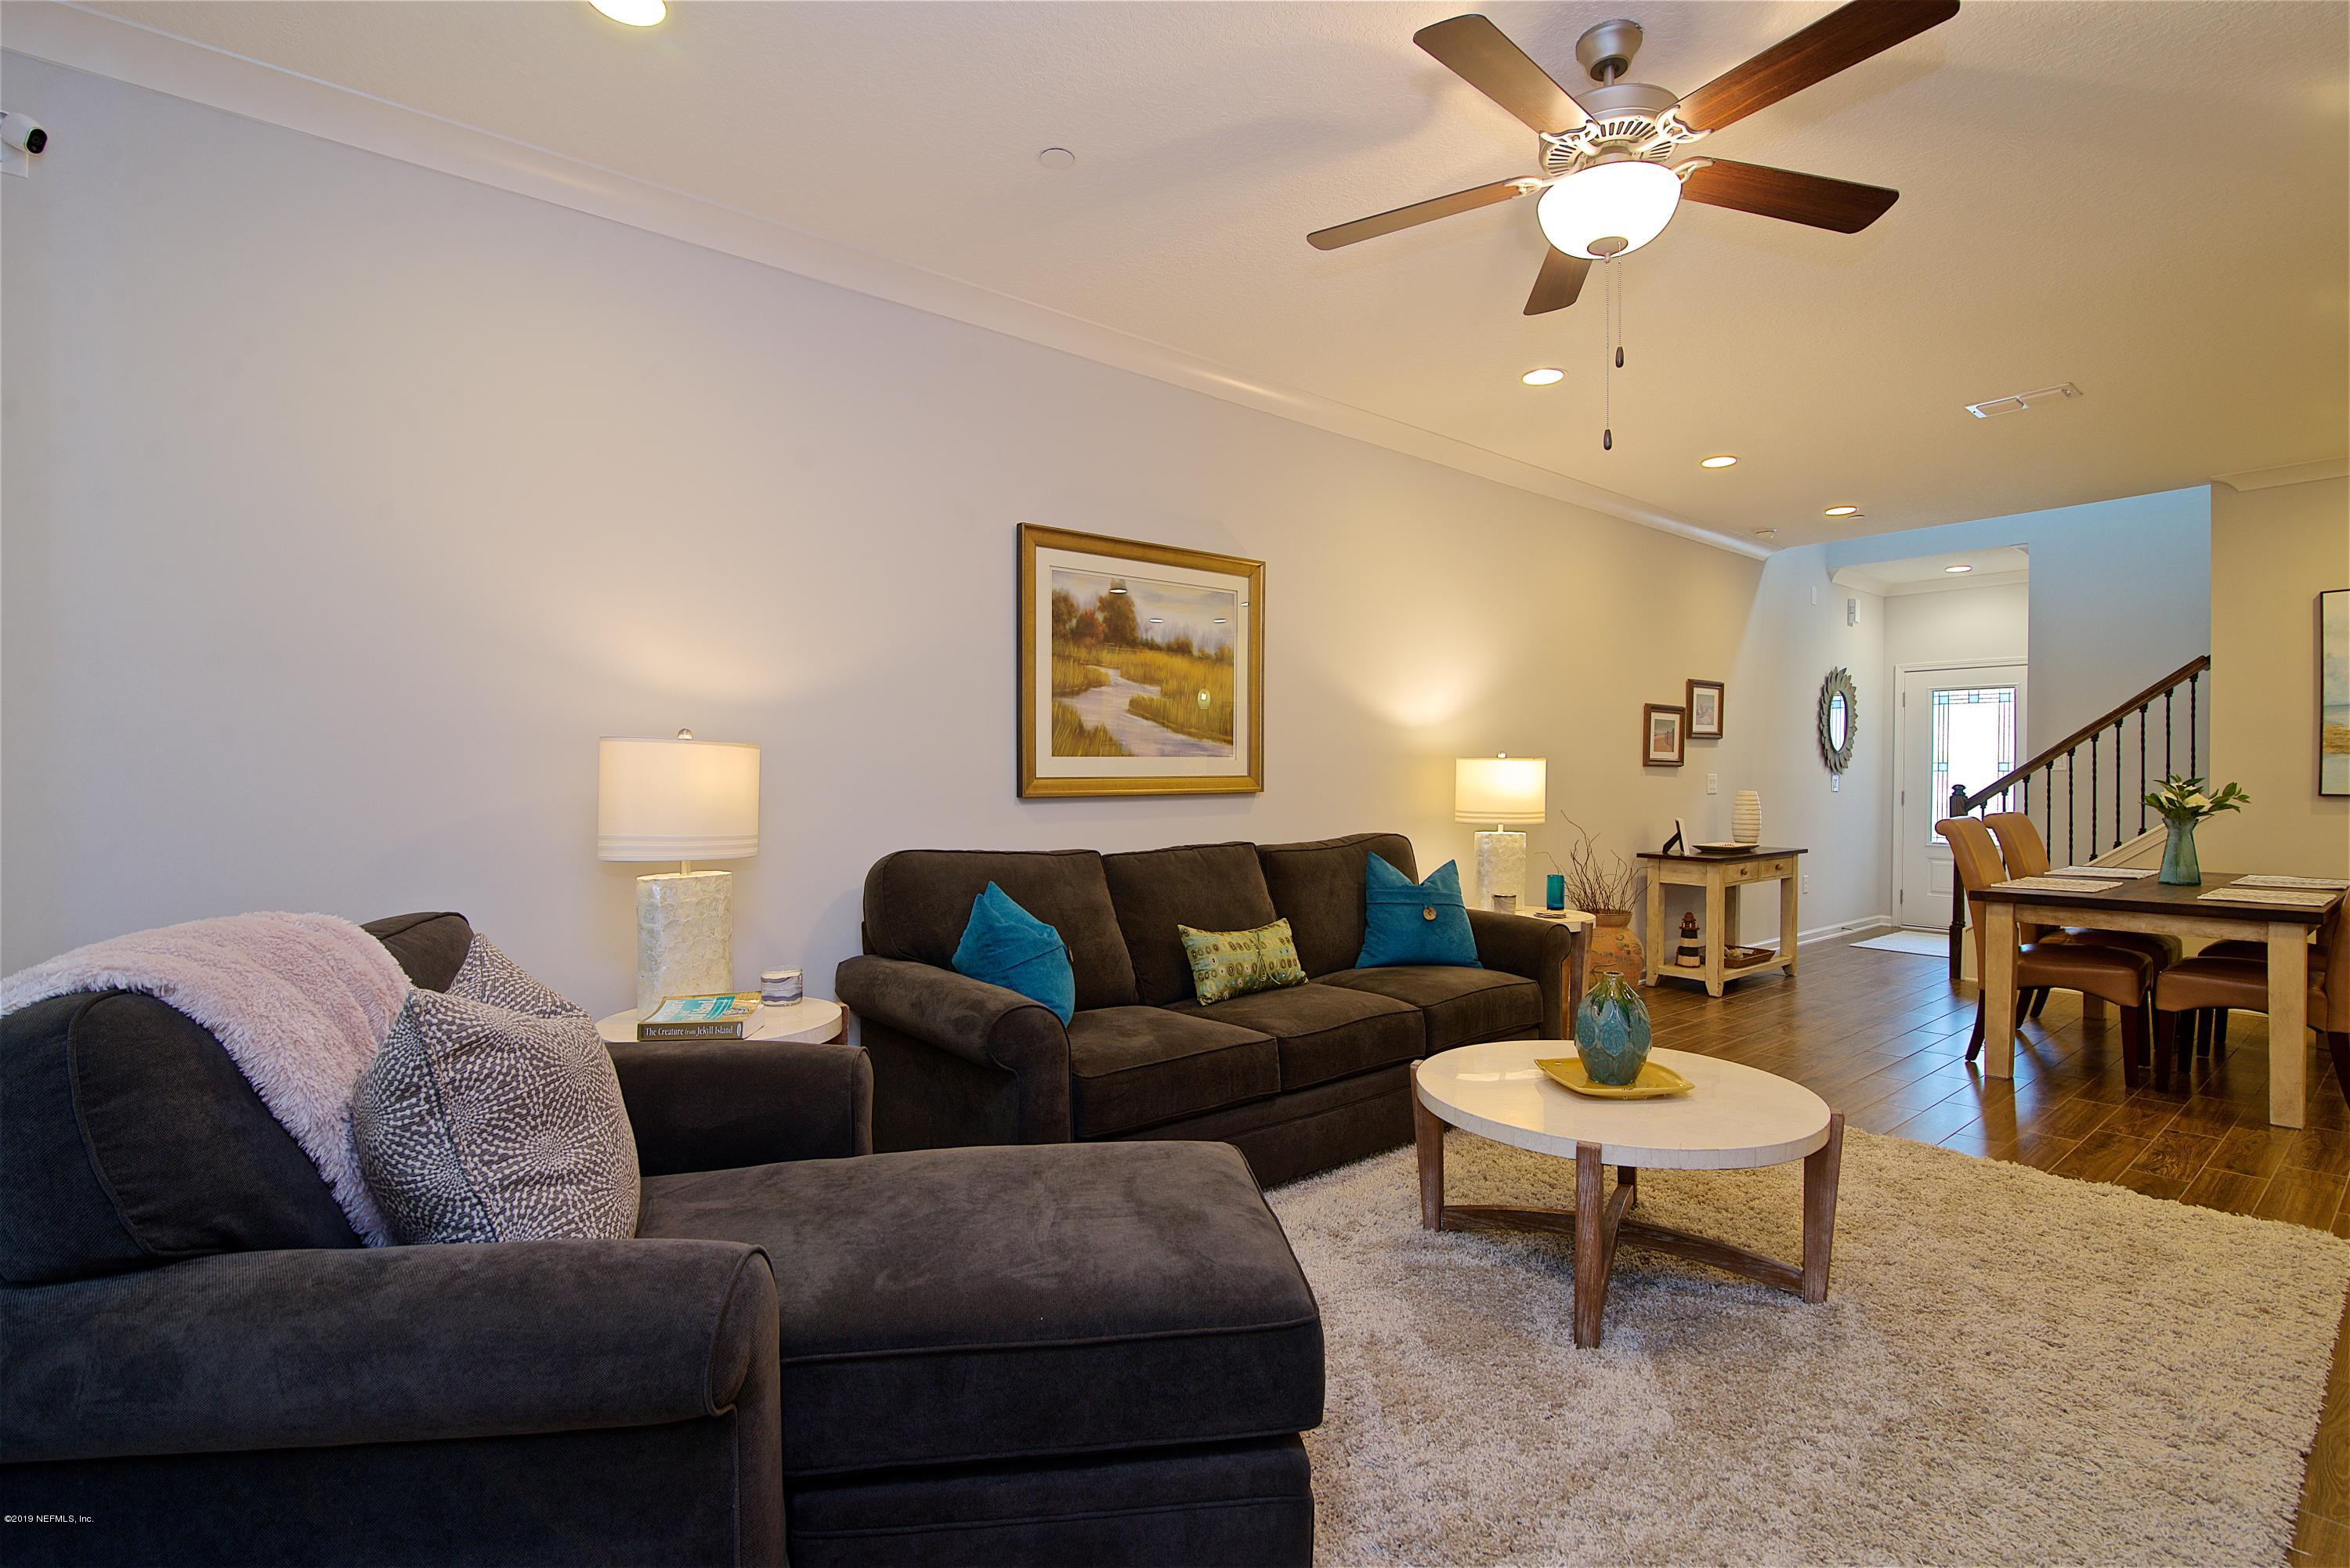 488 COCONUT PALM PKWY PONTE VEDRA BEACH - 17